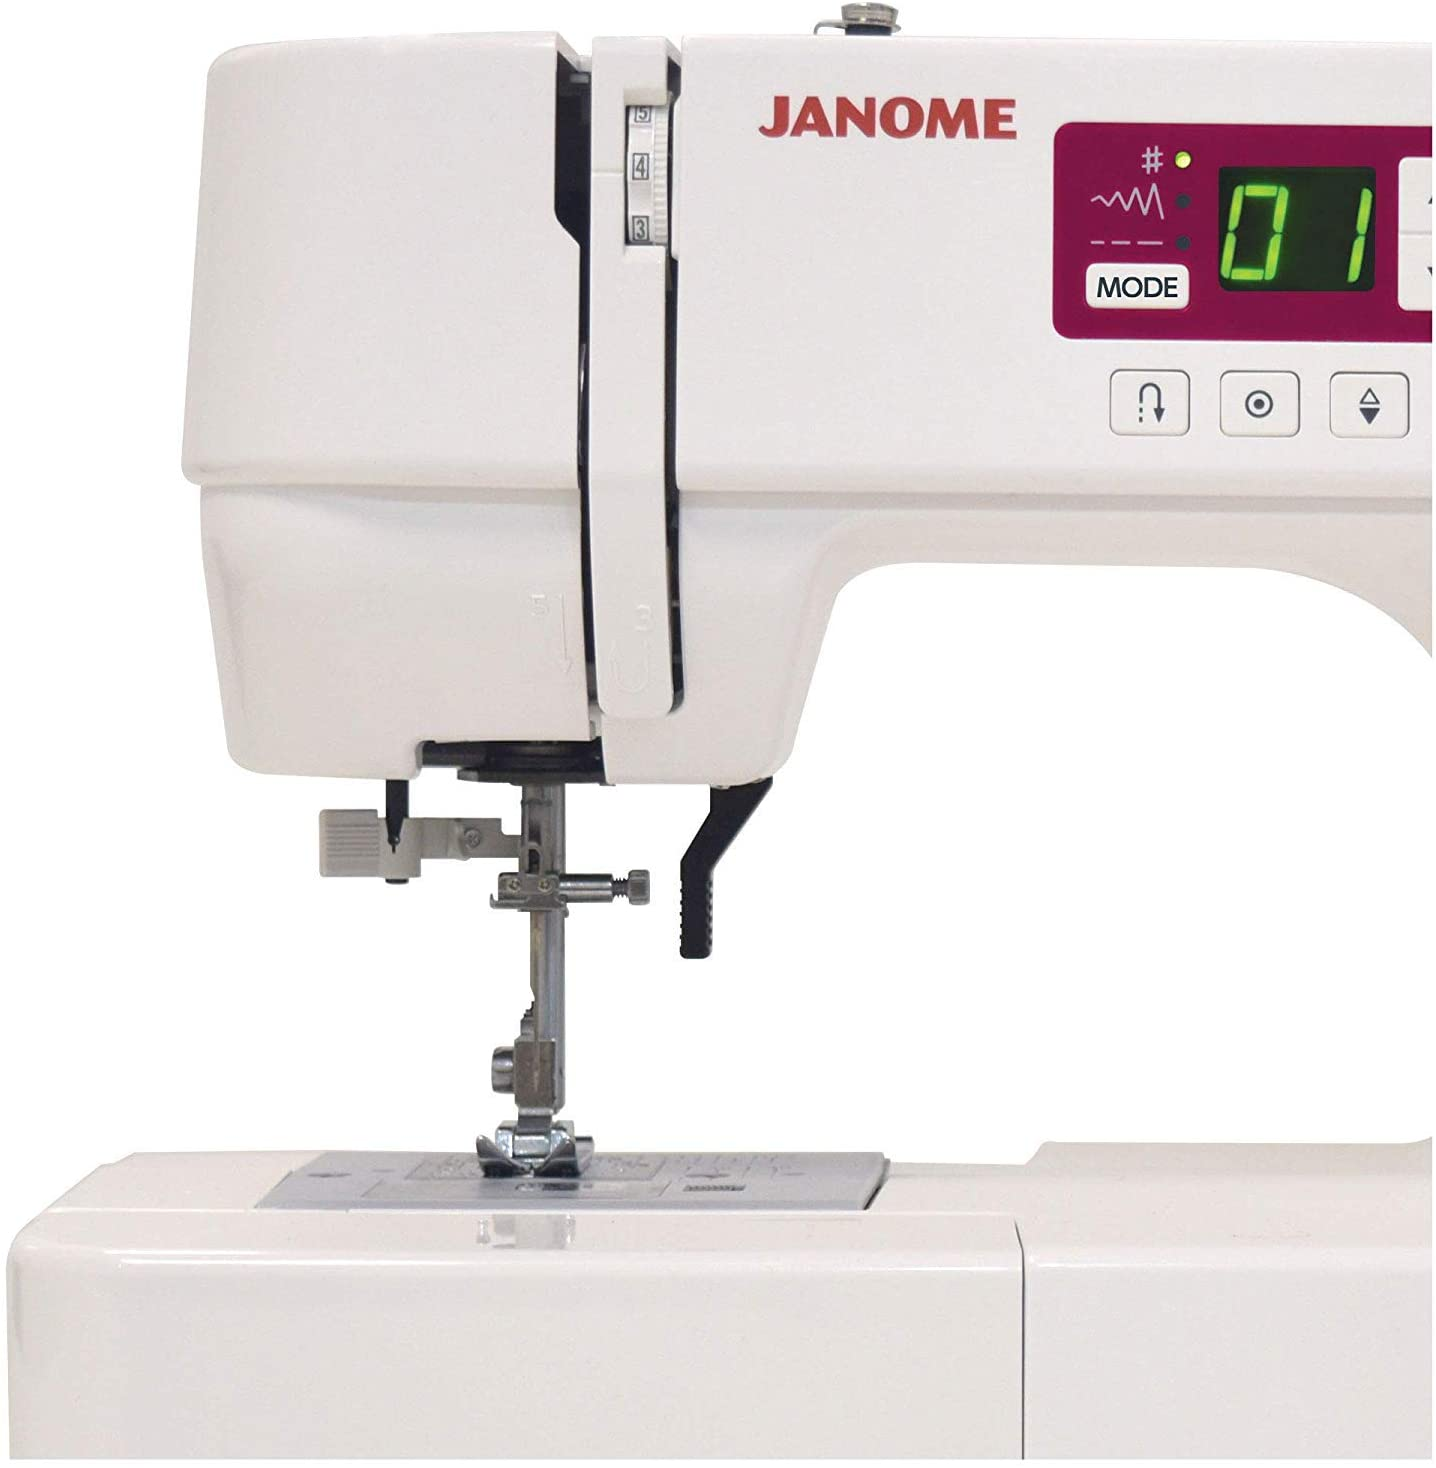 Clear Plastic Bag of 10 Janome New Home Top Load